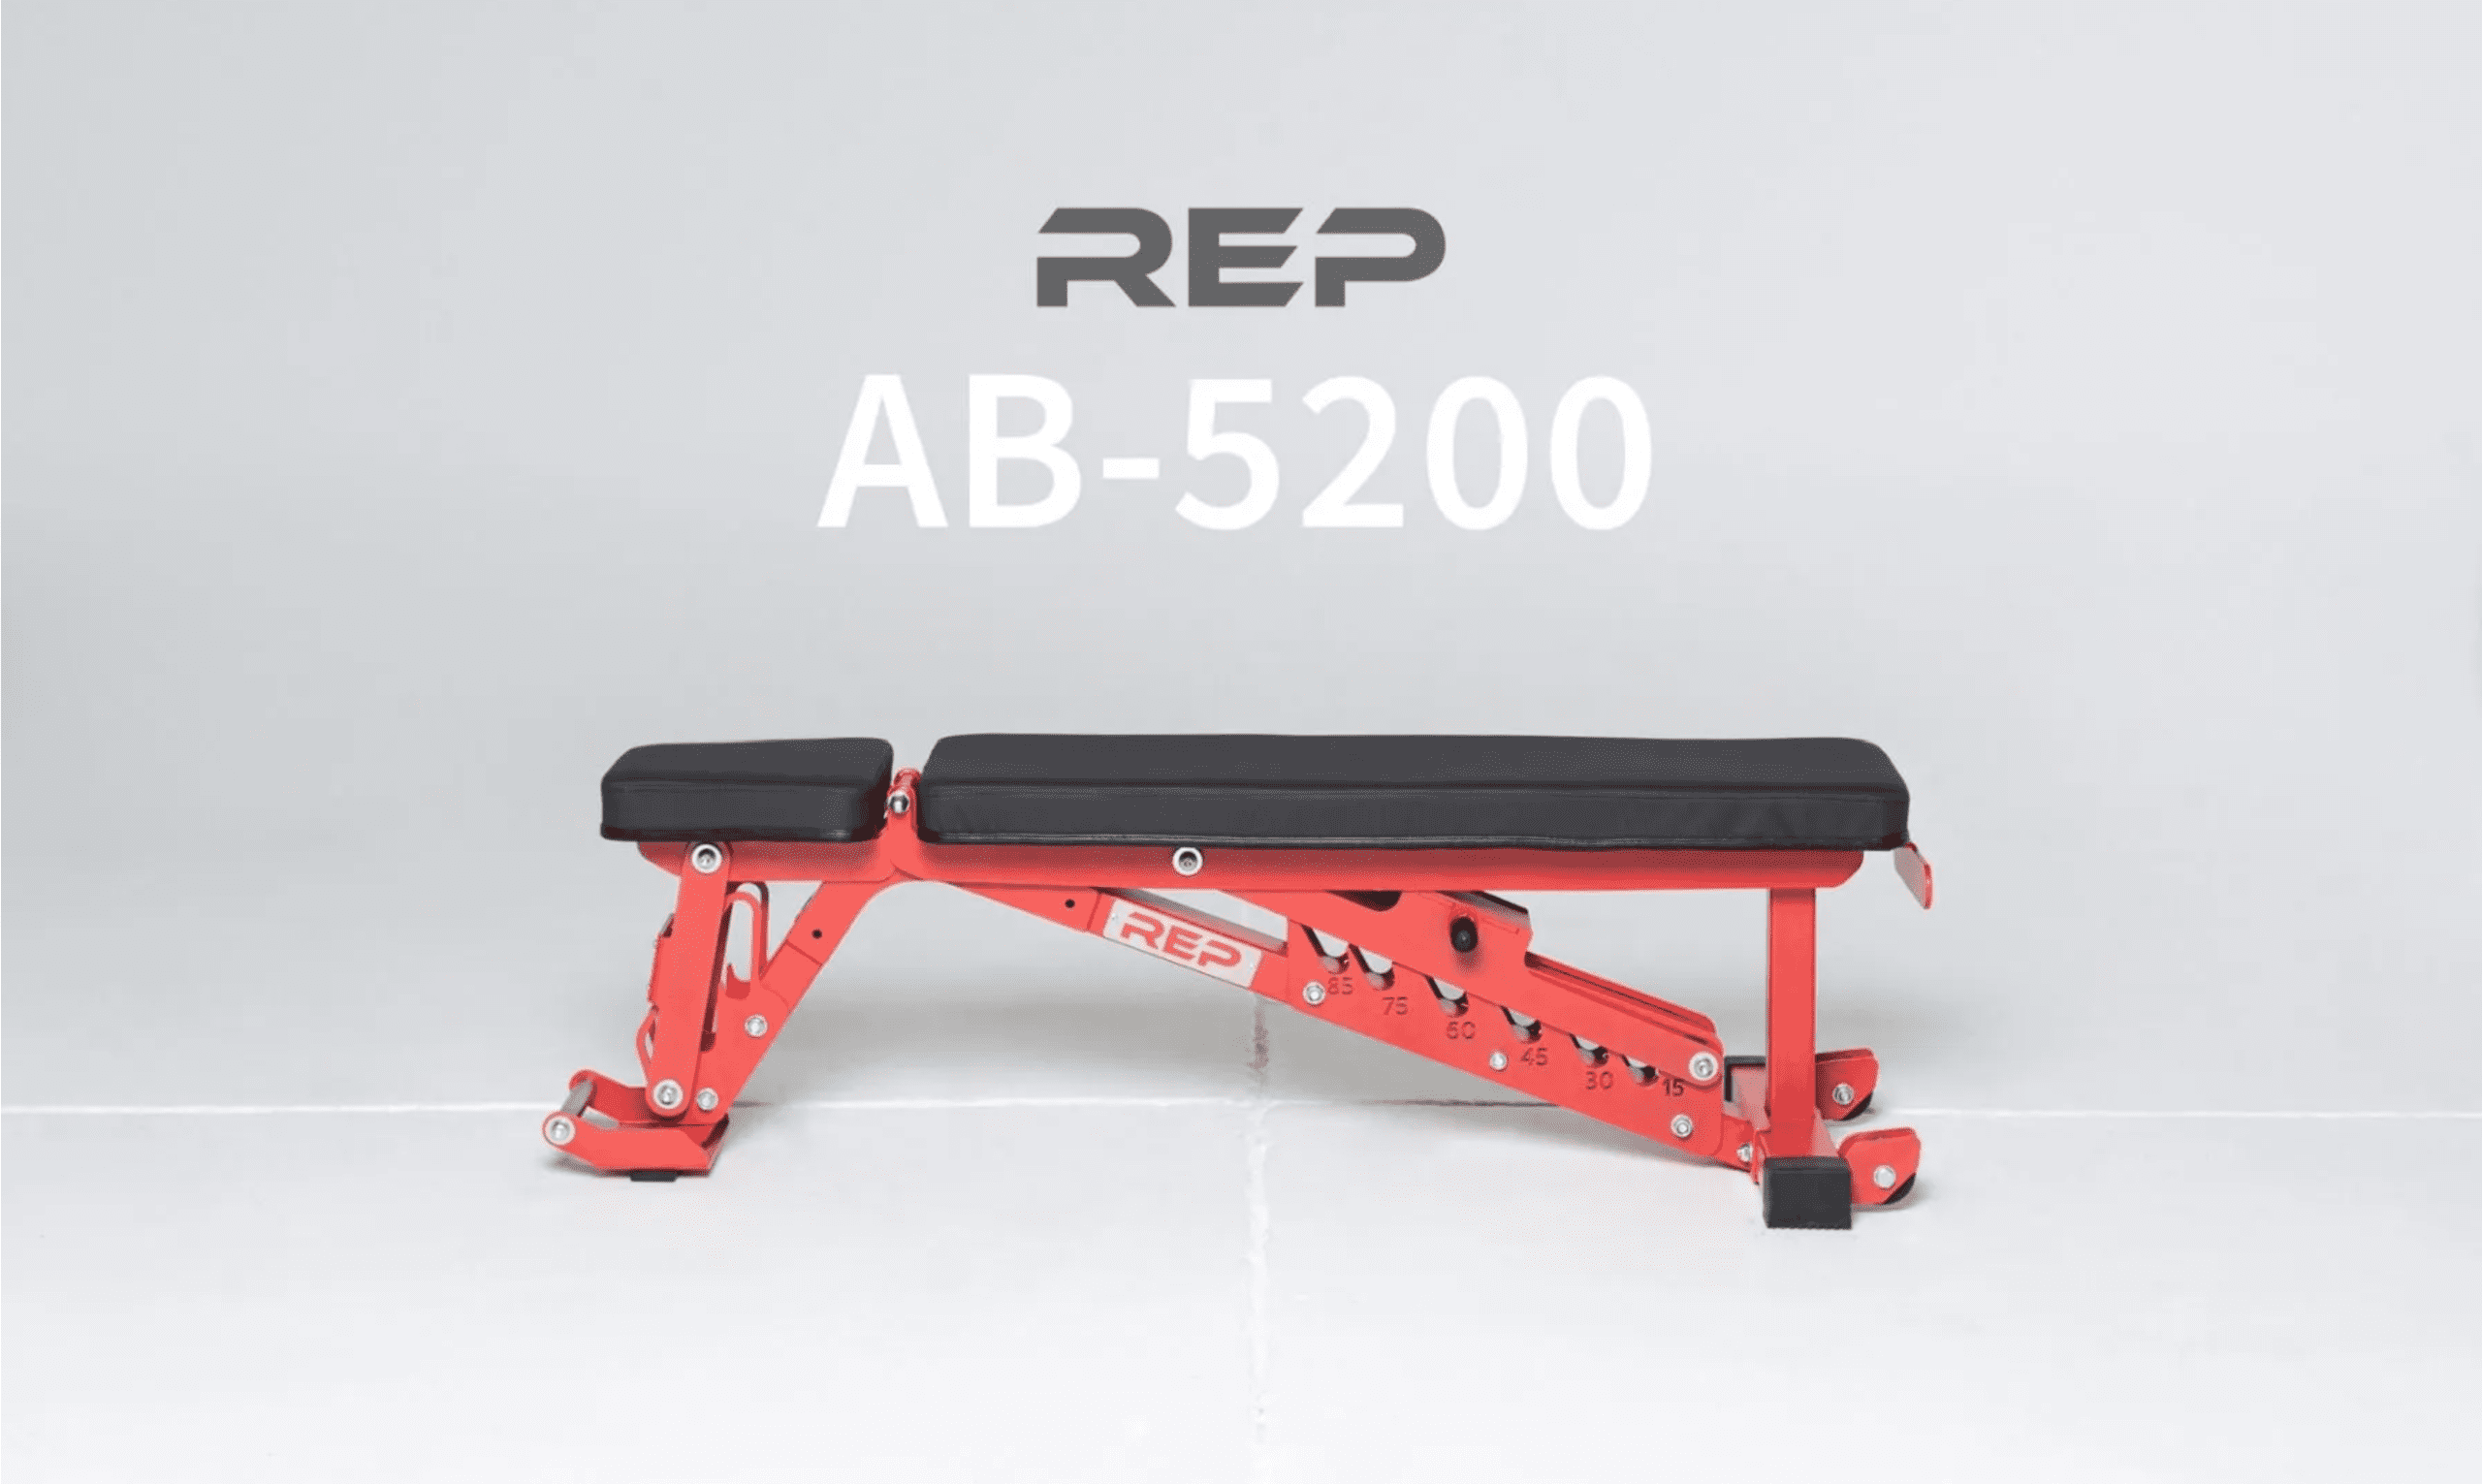 REP AB-5200 Adjustable Bench